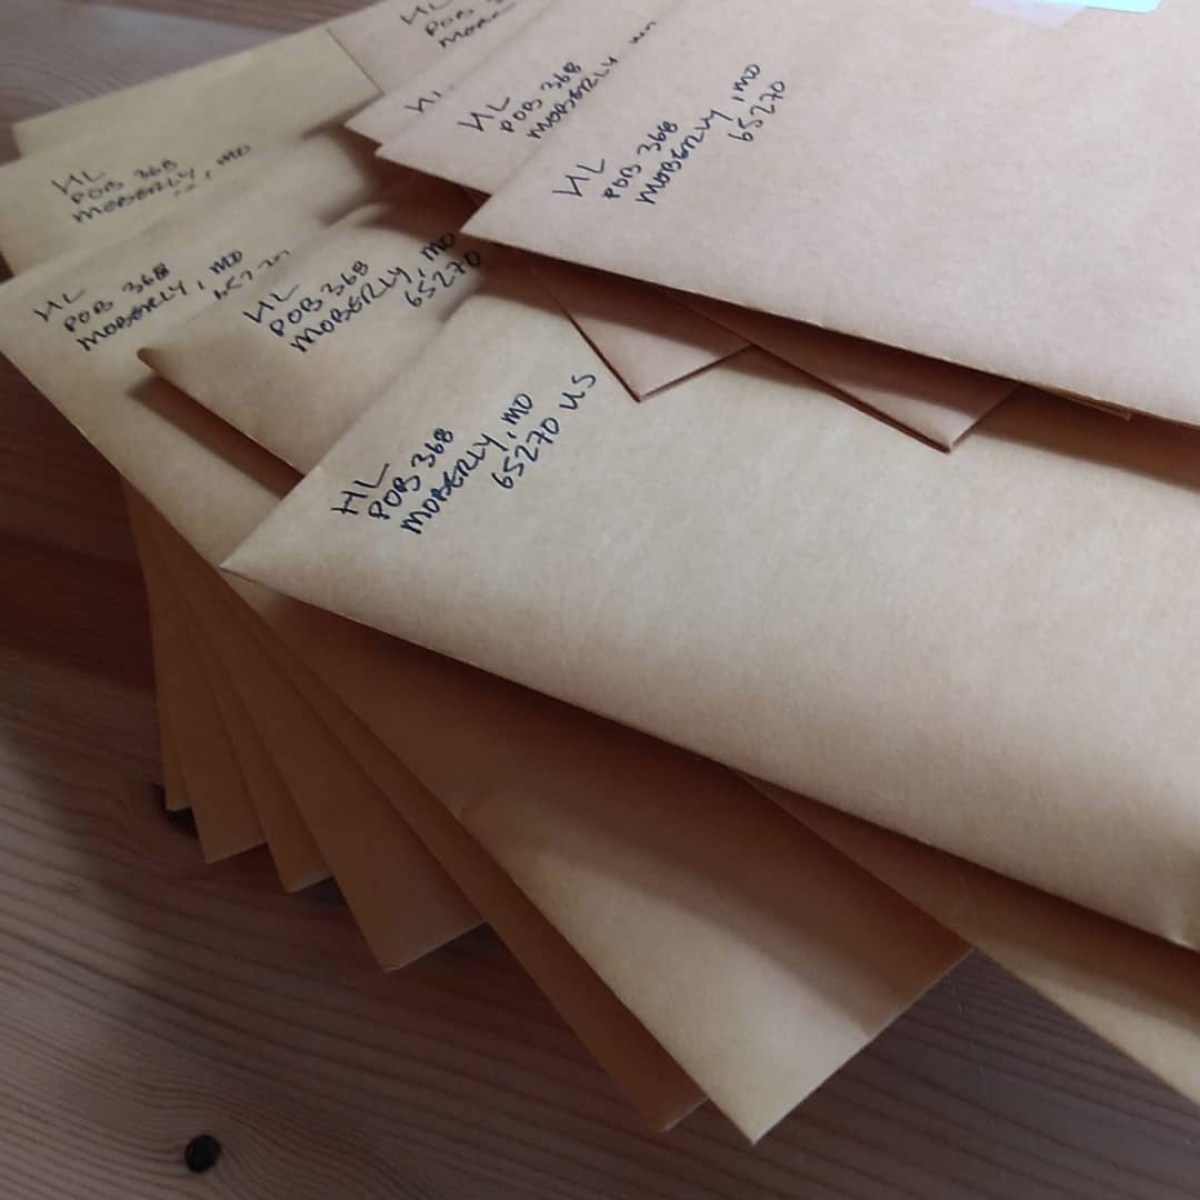 Postal Exchange and Publication Subscription Perks for Patrons ready to post on their way across the world!